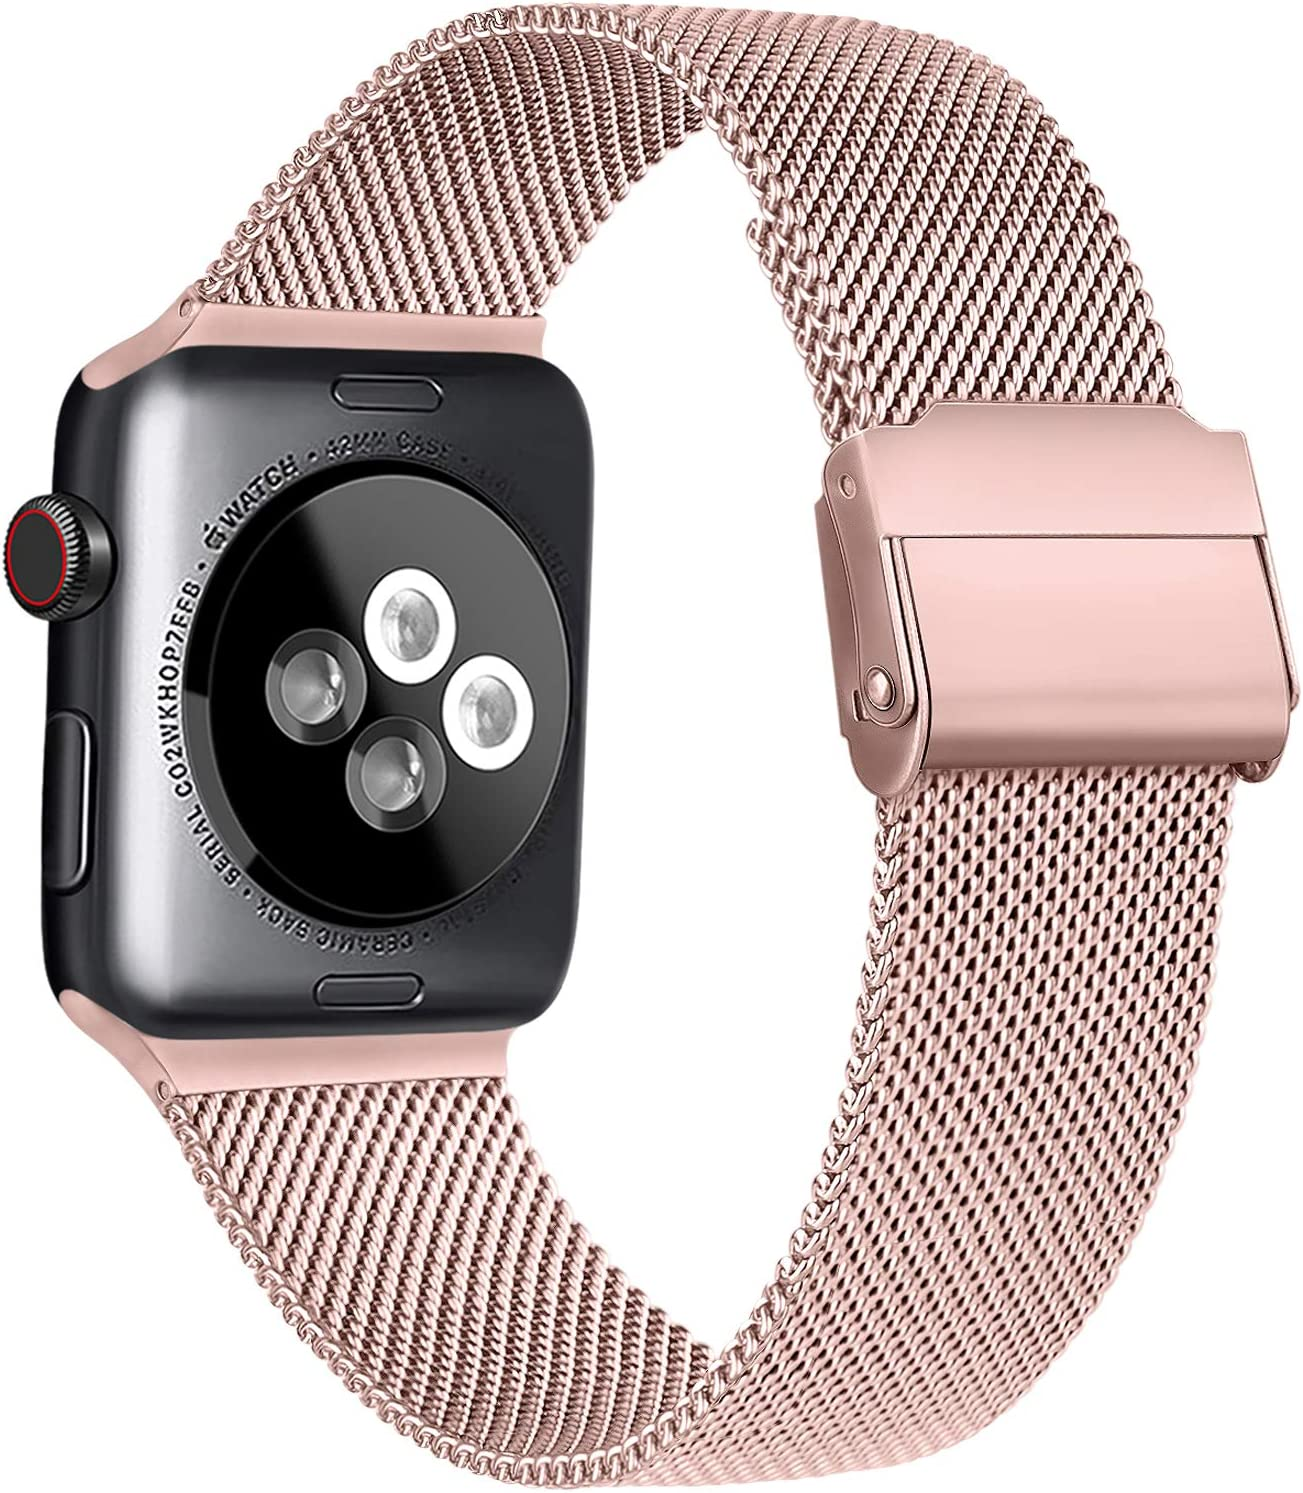 Meliya Compatible with Apple Watch Band 44mm 42mm 40mm 38mm, Stainless Steel Mesh Sport Wristband Compatible for iWatch Series SE 6 5 4 3 2 1 (42mm/44mm, Rose Pink)